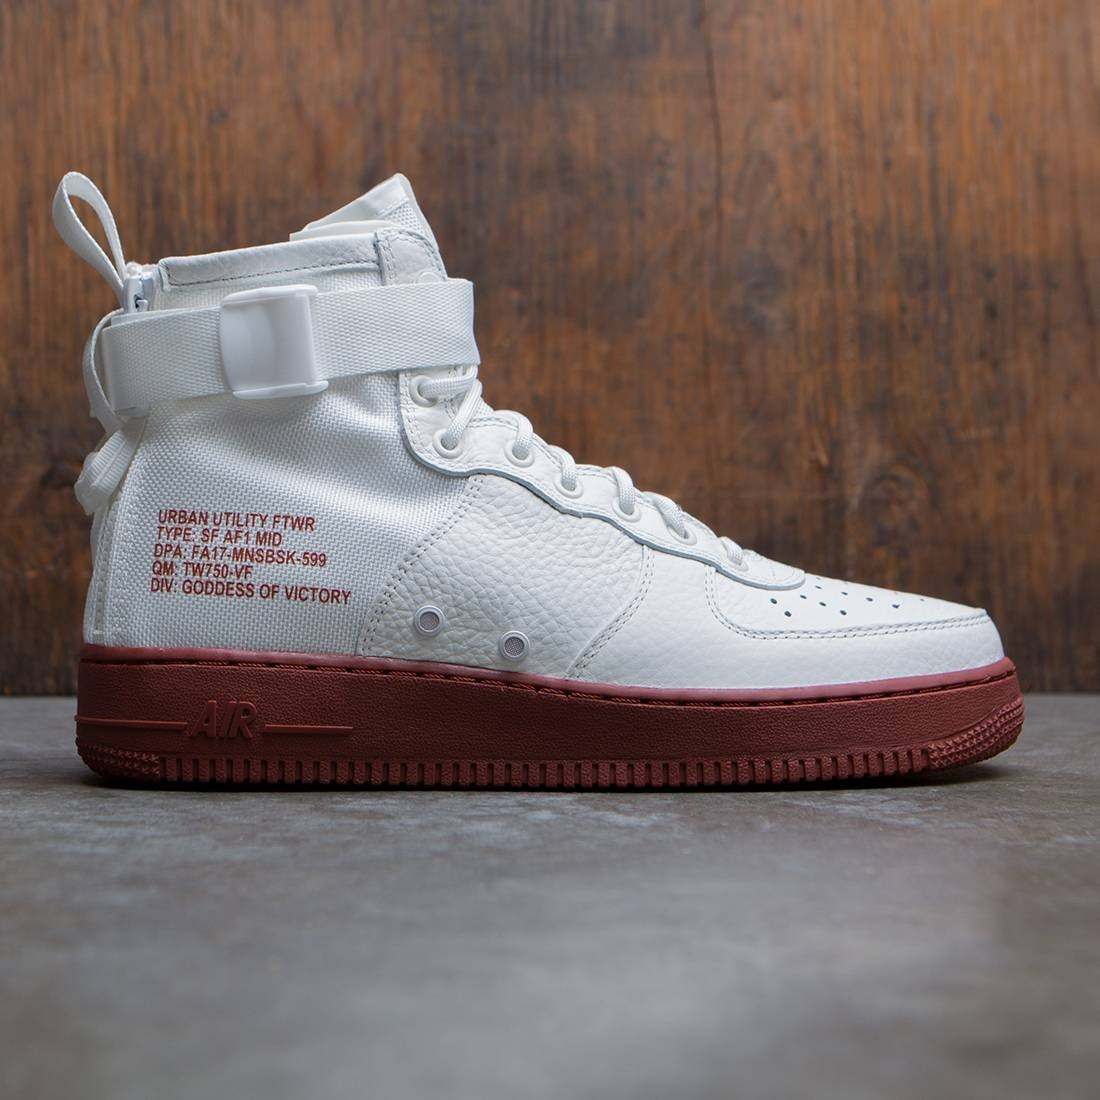 Repetido Falsificación Portero  nike men sf air force 1 mid ivory ivory mars stone